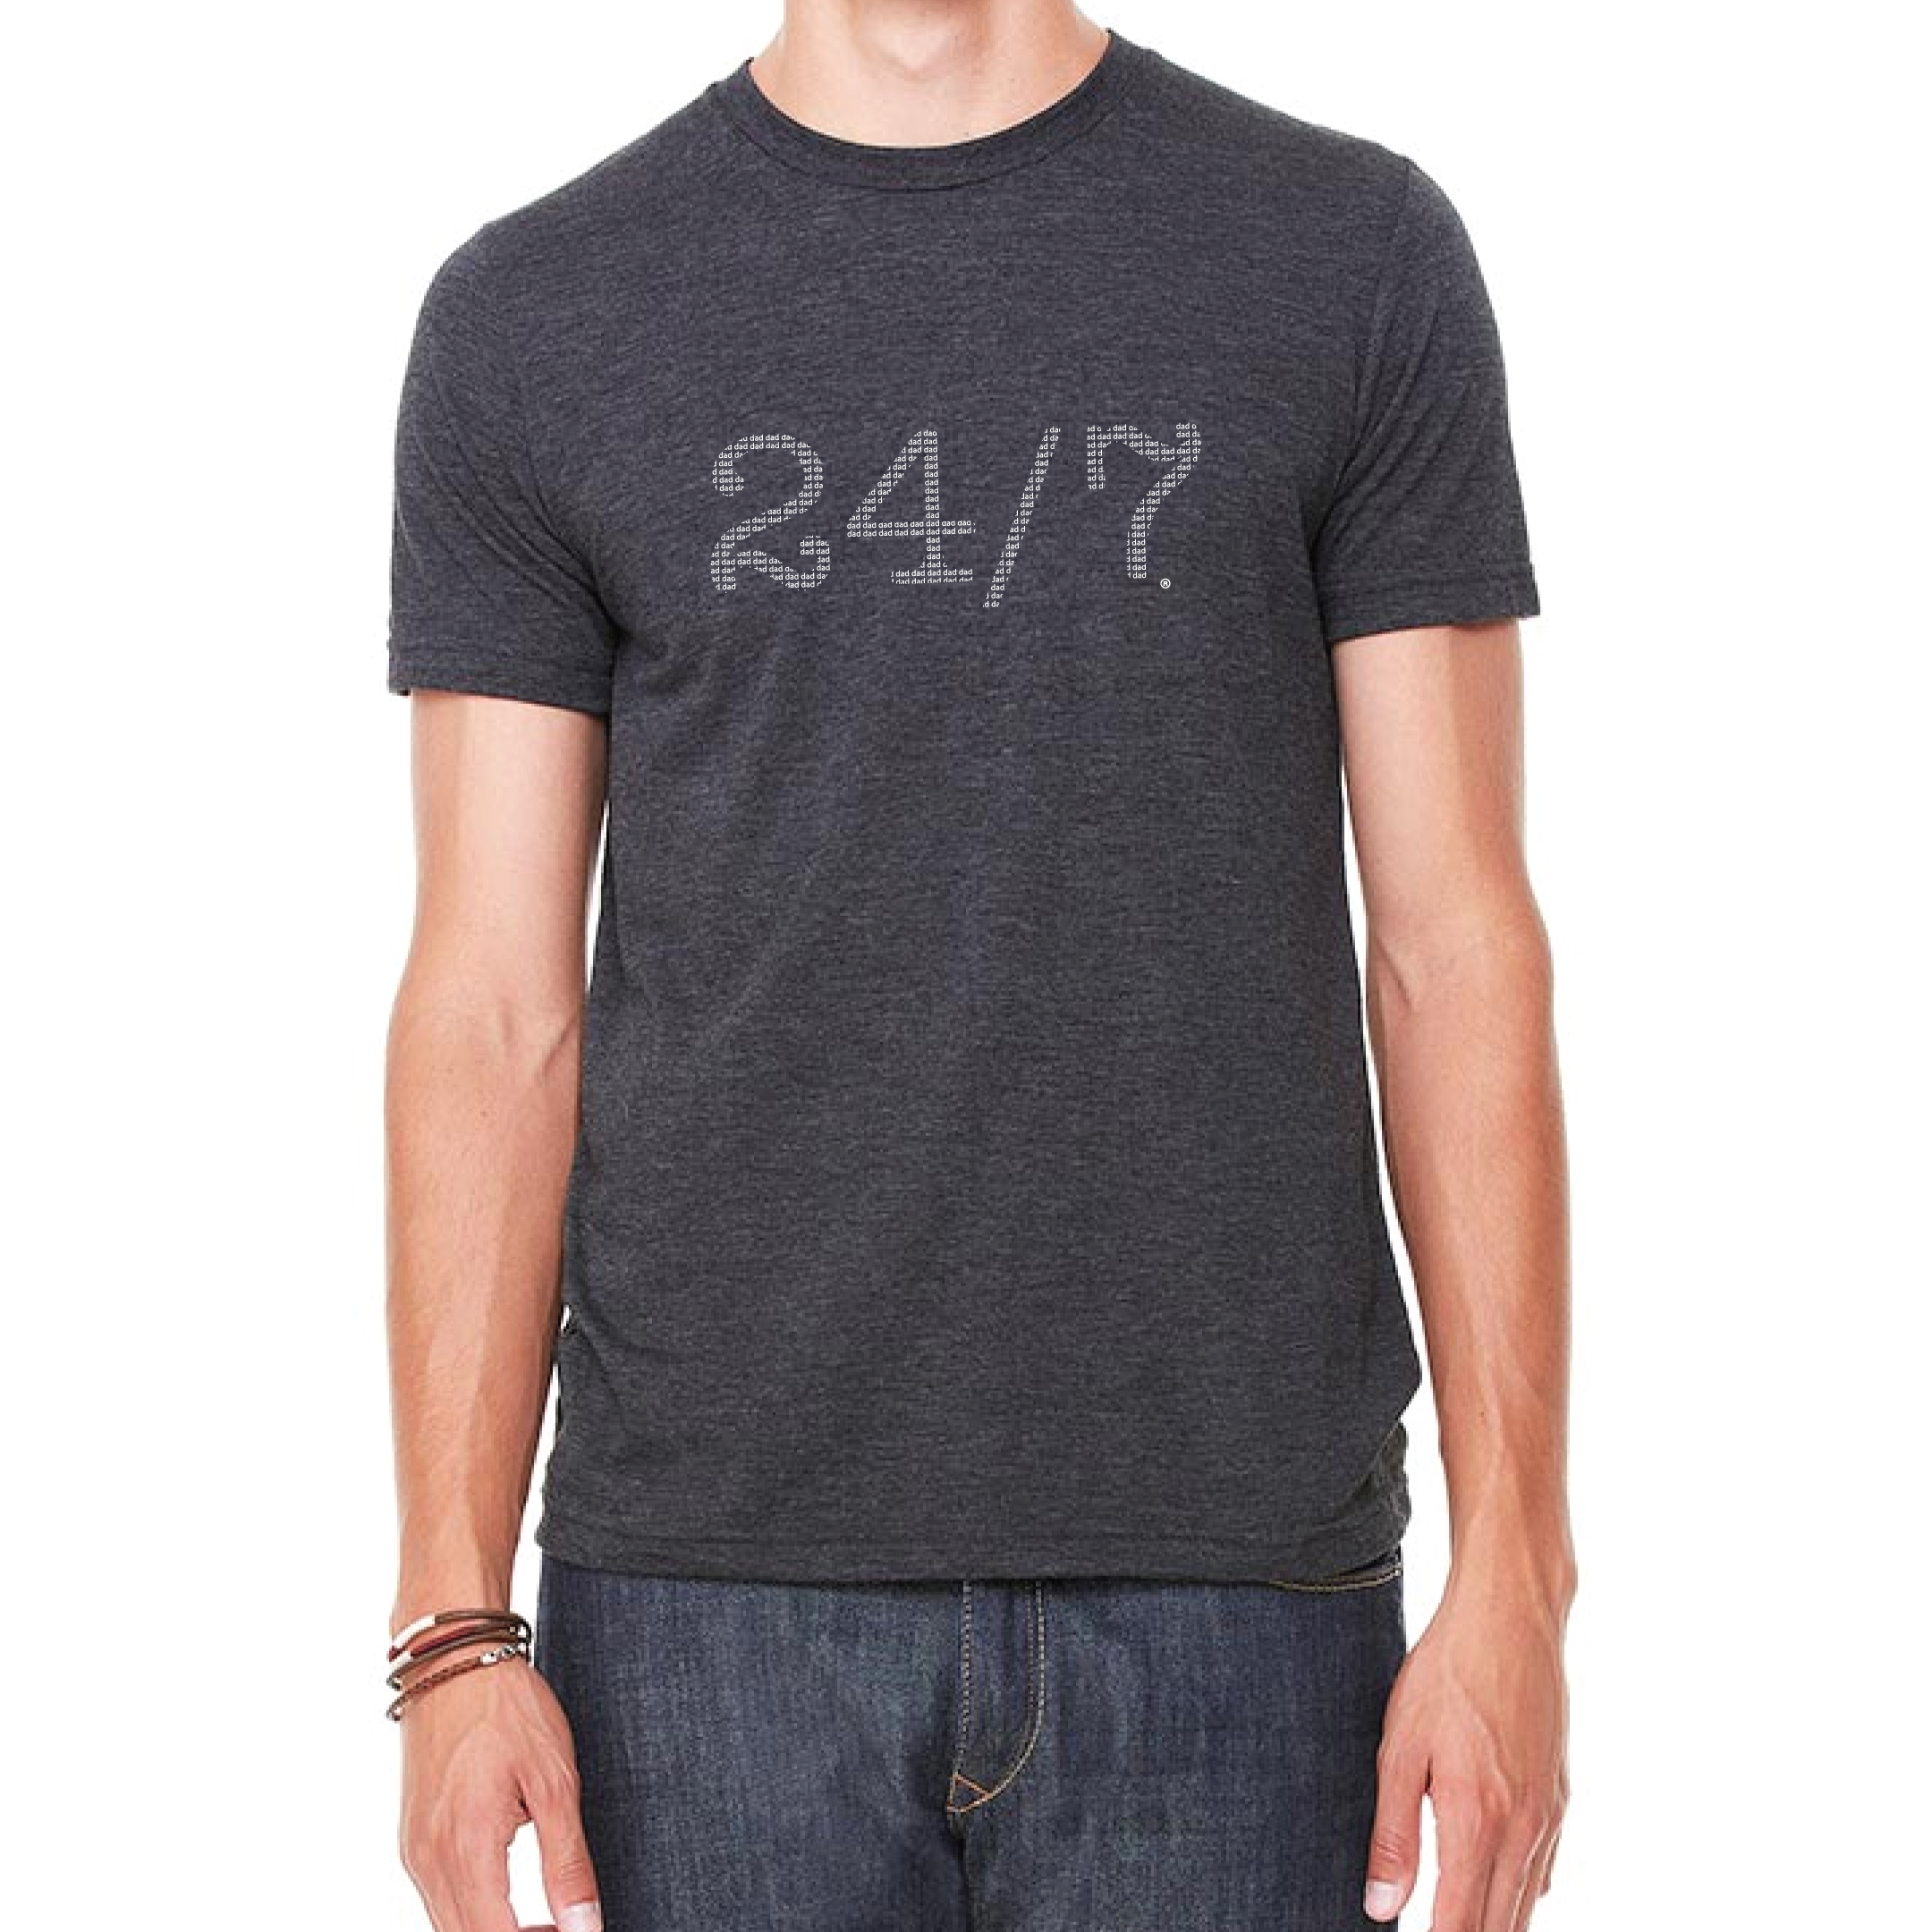 247dad-t-shirt-full.jpg